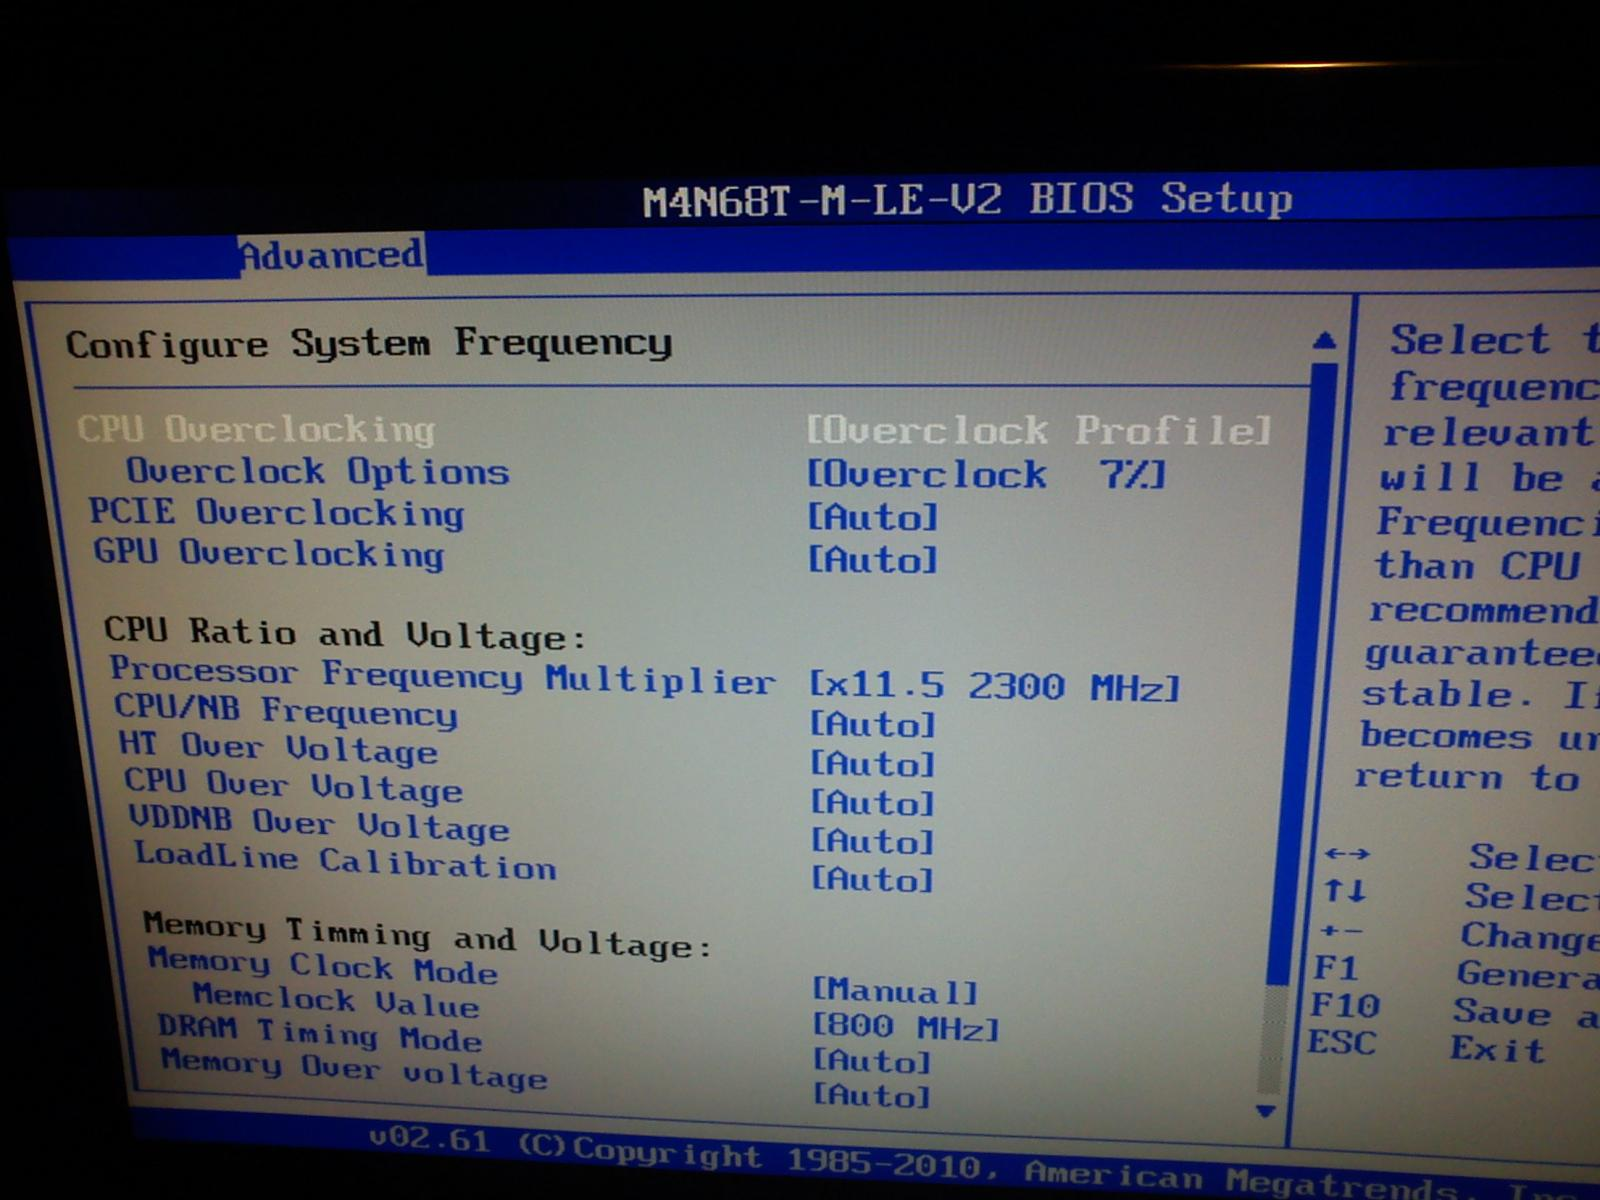 How to Overclock Athlon X2 5200+ - CPUs, Motherboards, and